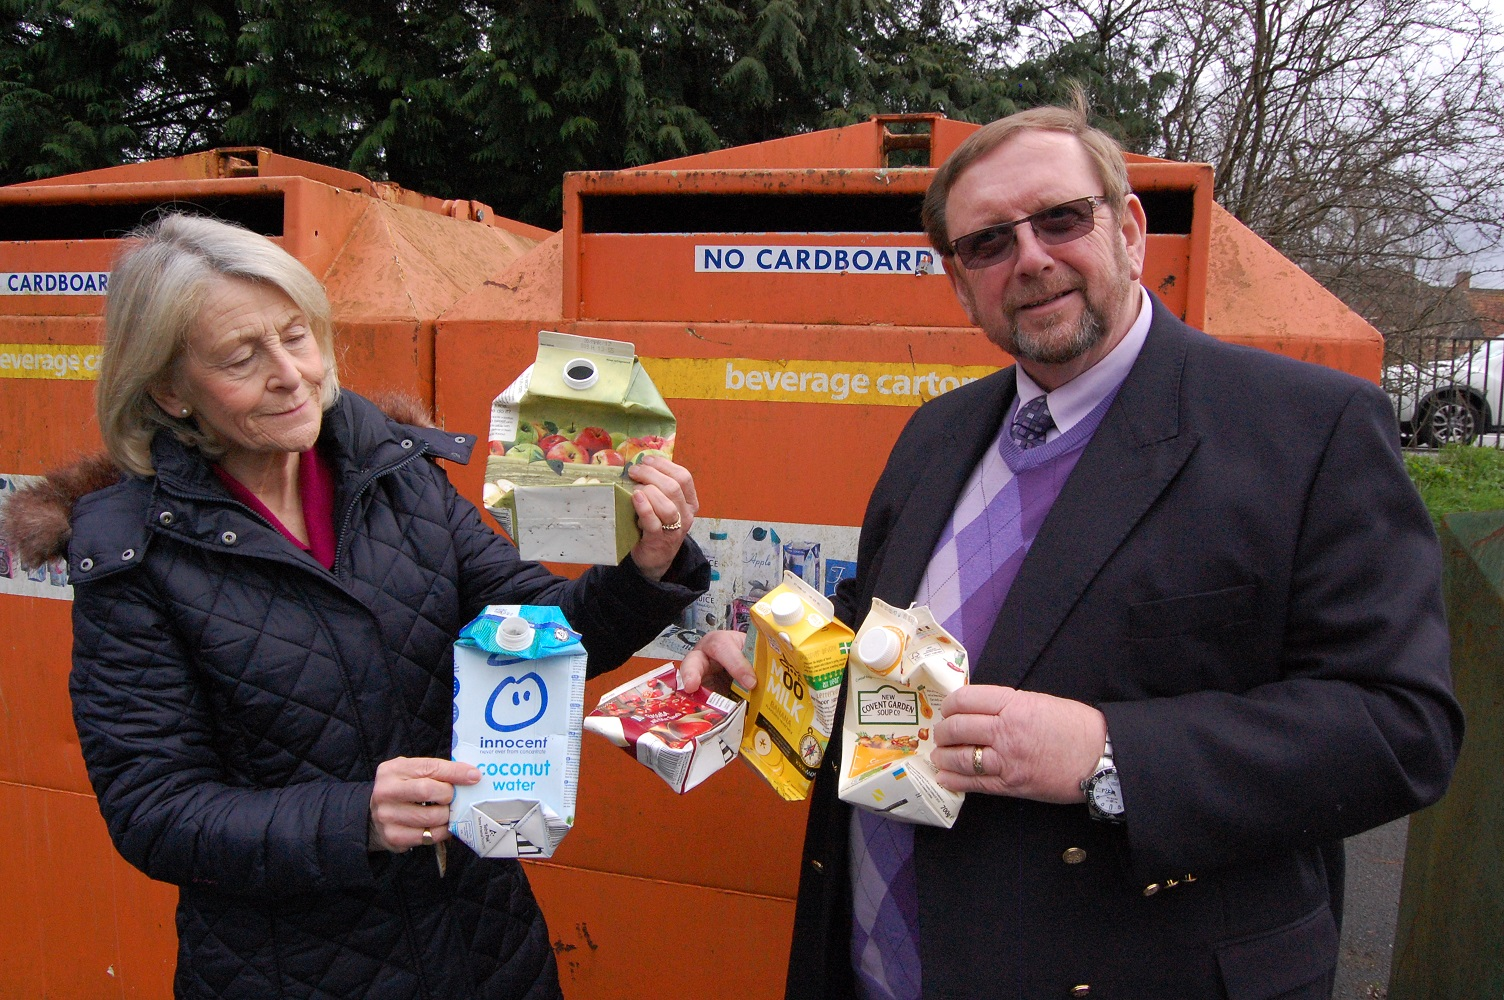 Cllr Manuel and Cllr Bryan recycling cartons